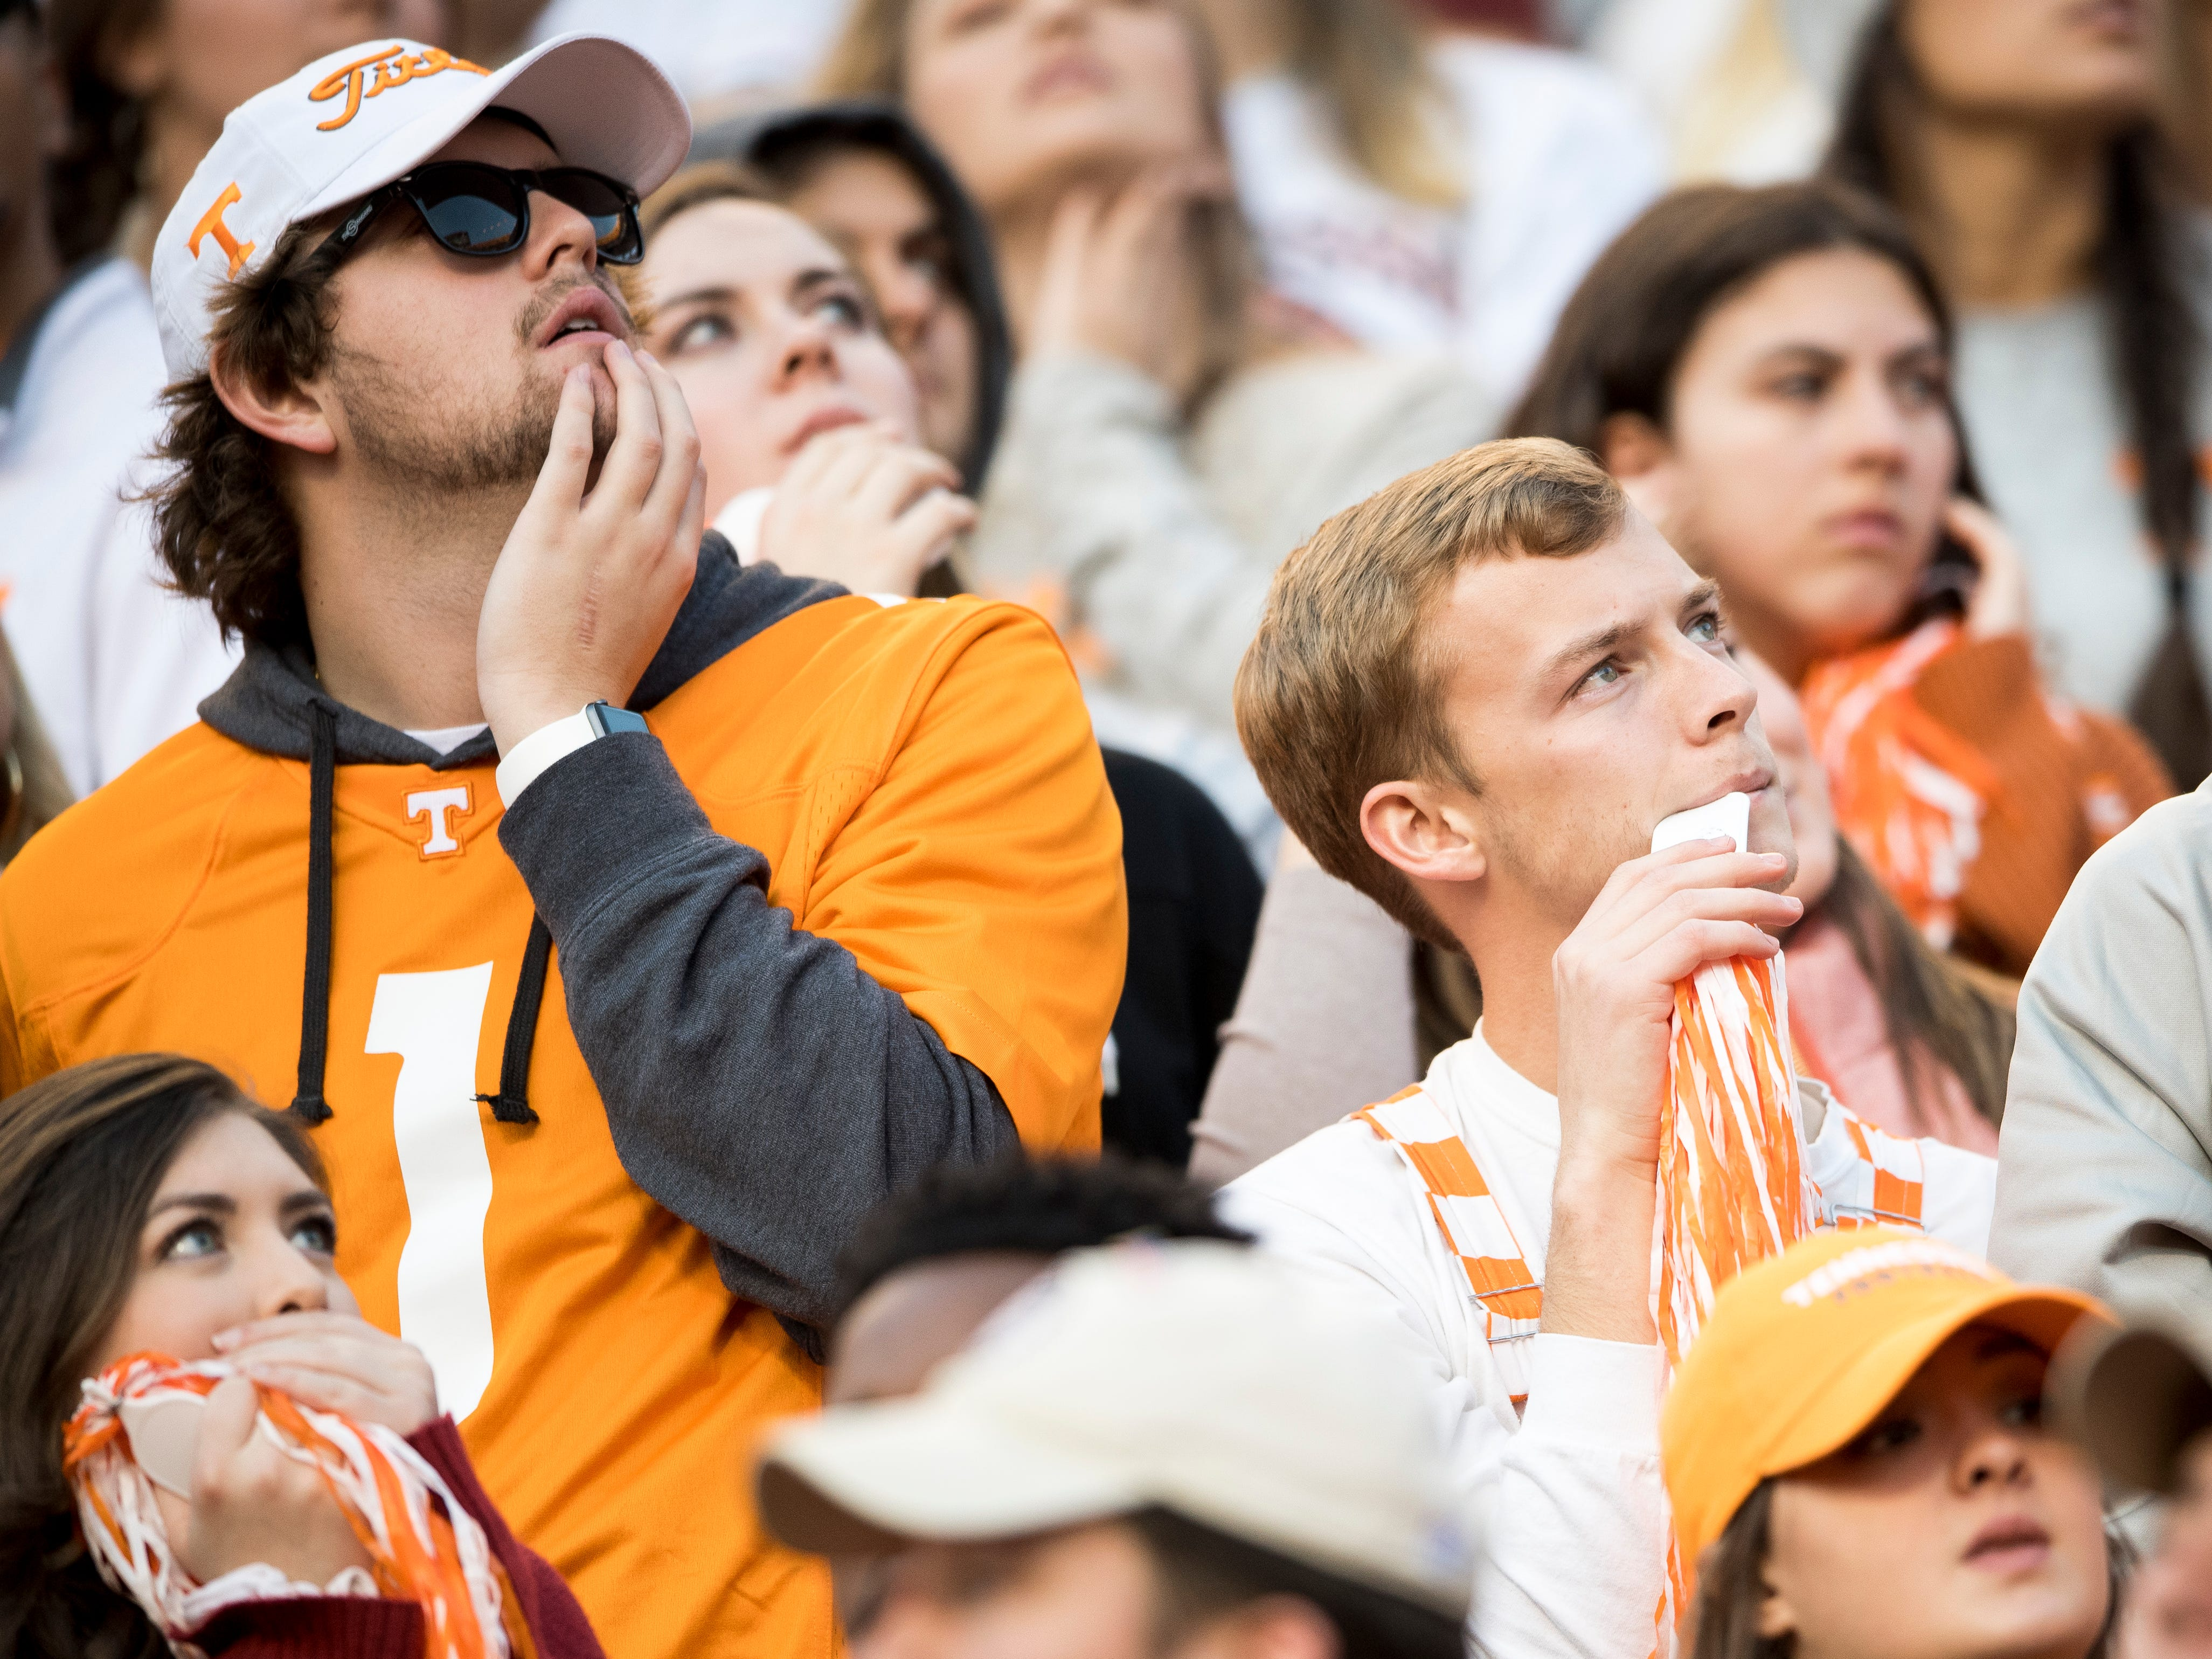 Fans react to a Missouri touchdown during the Tennessee Volunteers game against the Missouri Tigers in Neyland Stadium on Saturday, November 17, 2018.